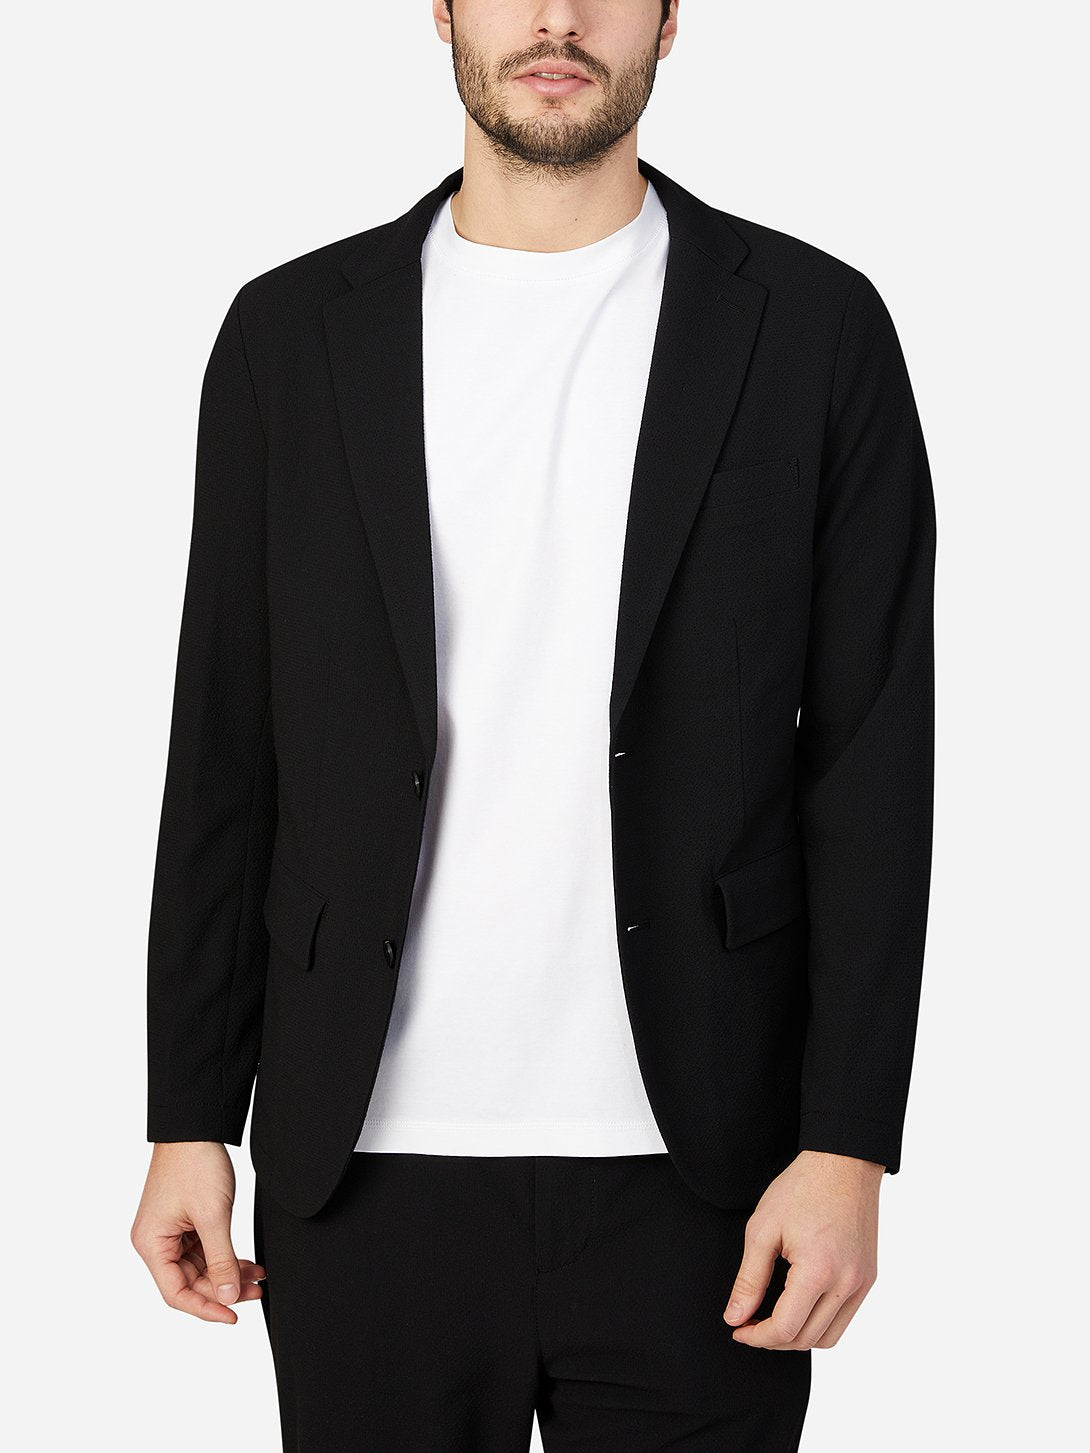 JET BLACK blazer for mens conduit blazer ons clothing